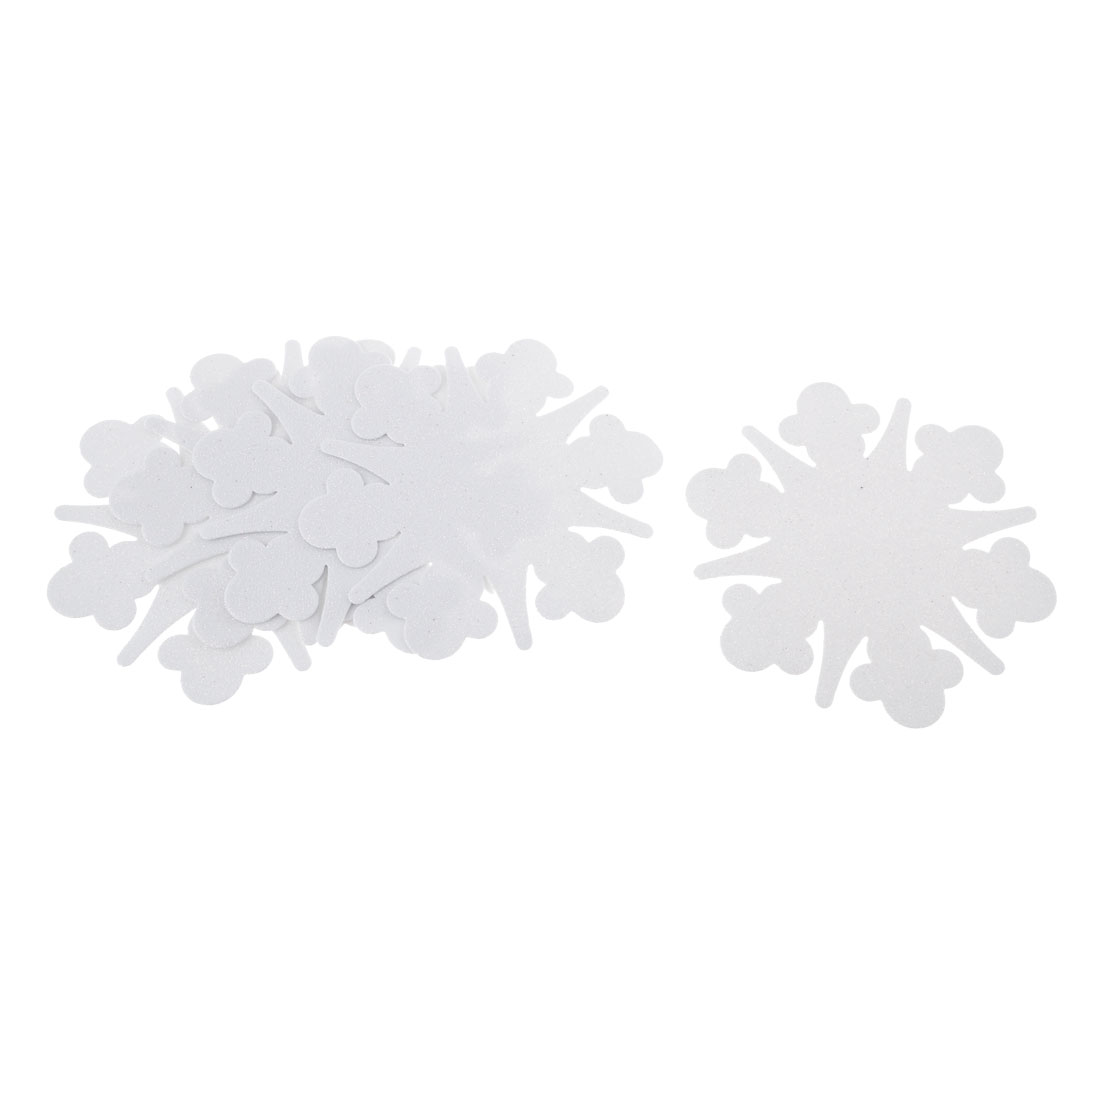 White Glittery Snowflakes Design Foam 3D Wall Sticker DIY Decal 5 Pcs